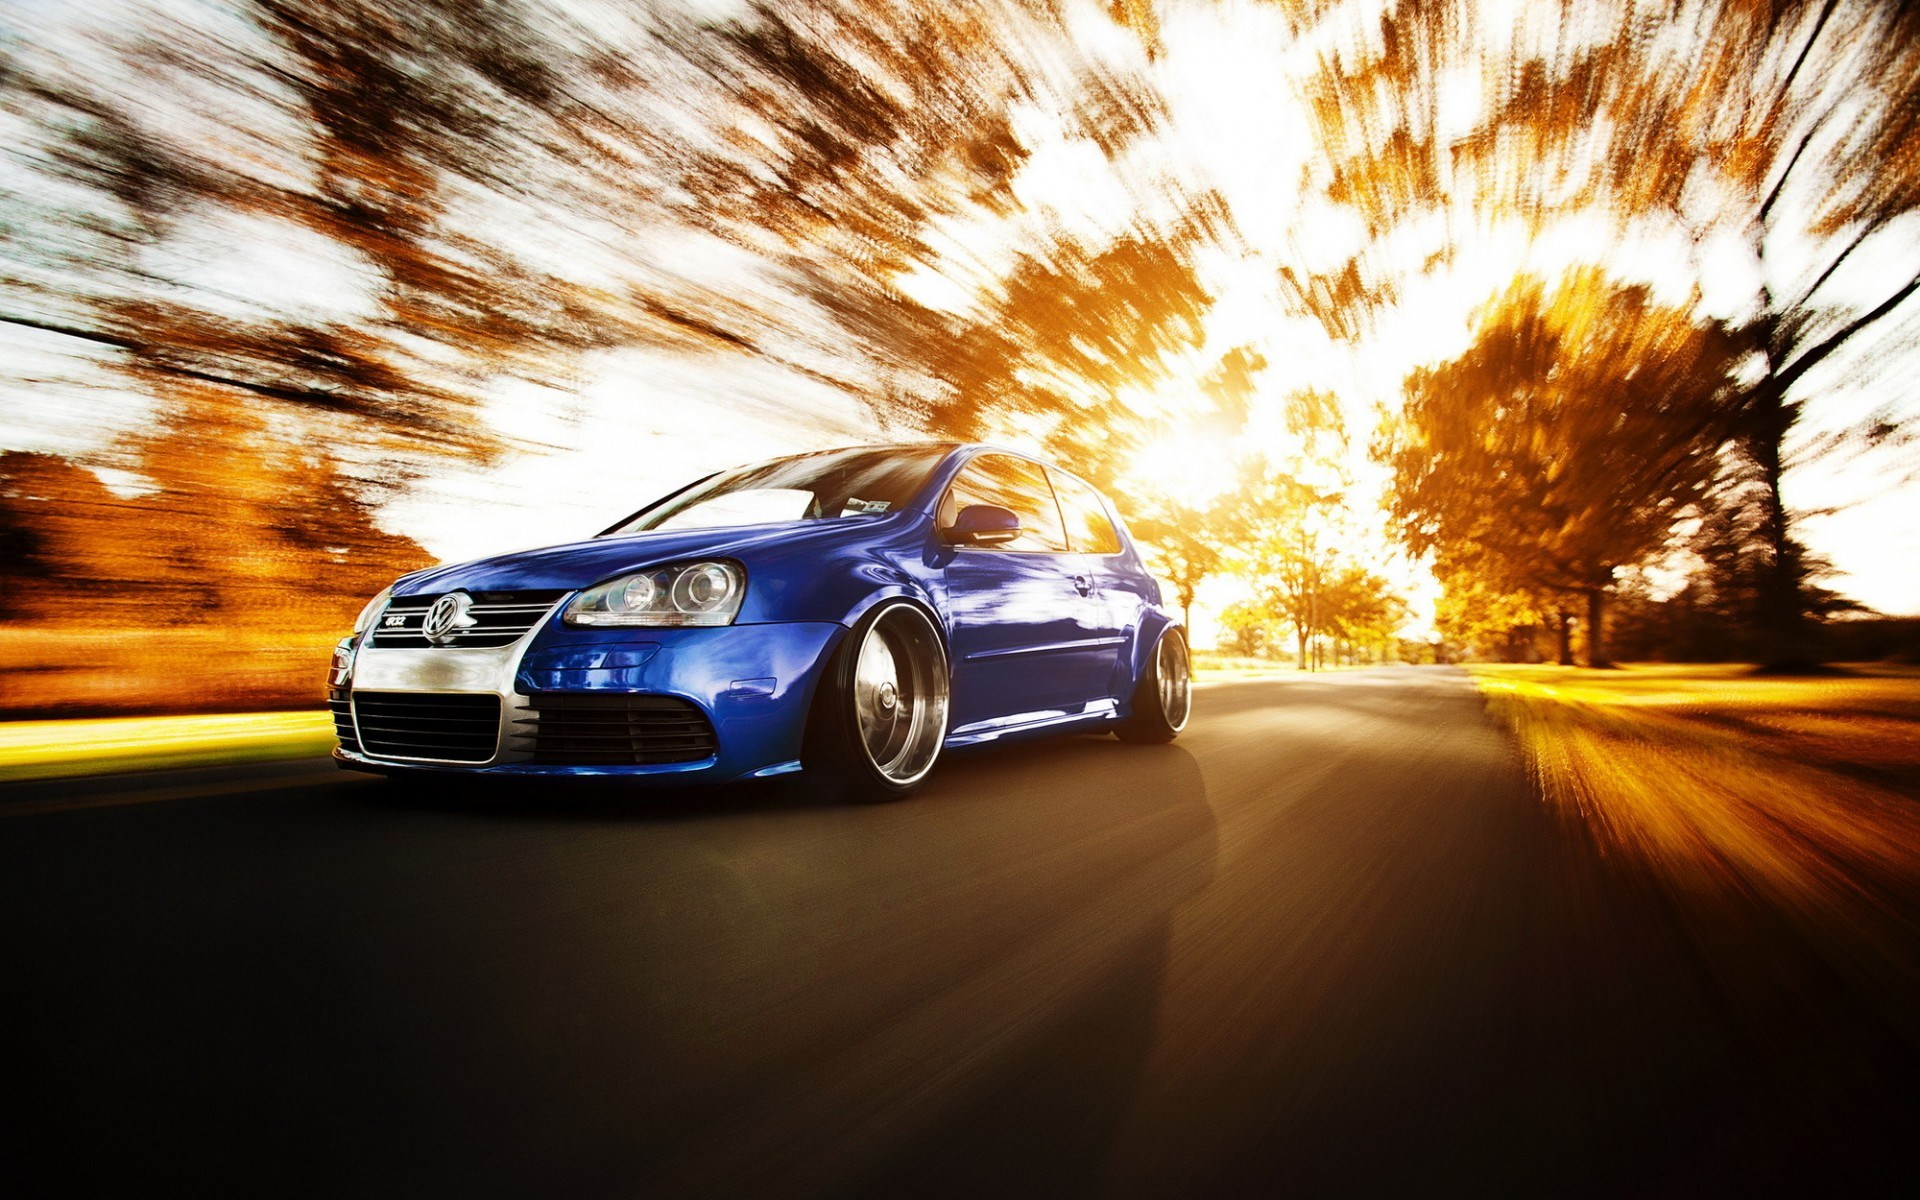 VW Volkswagen Golf Road Tuning Car Fall